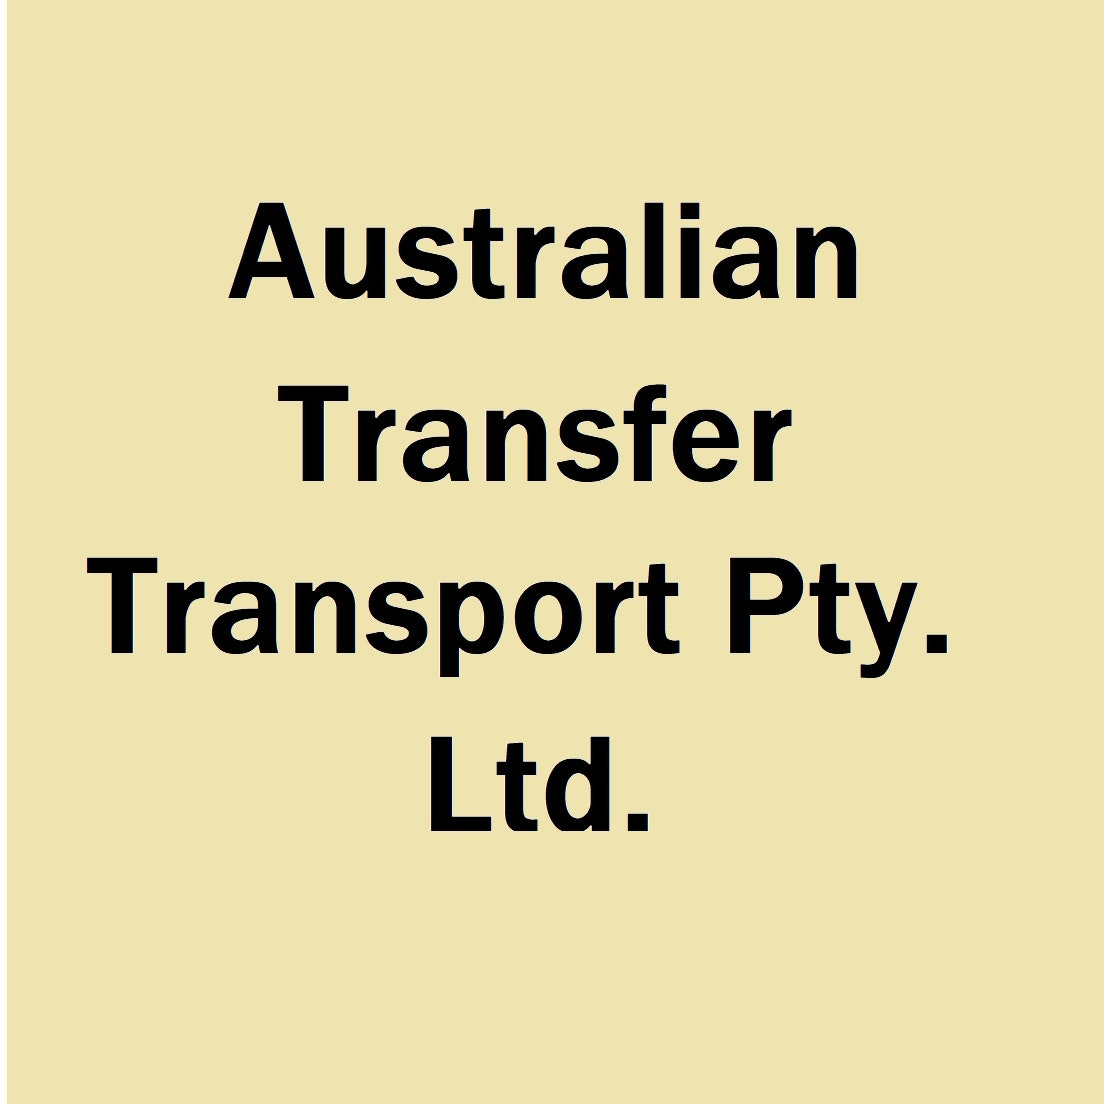 Australian Transfer Transport Pty. Ltd. logo